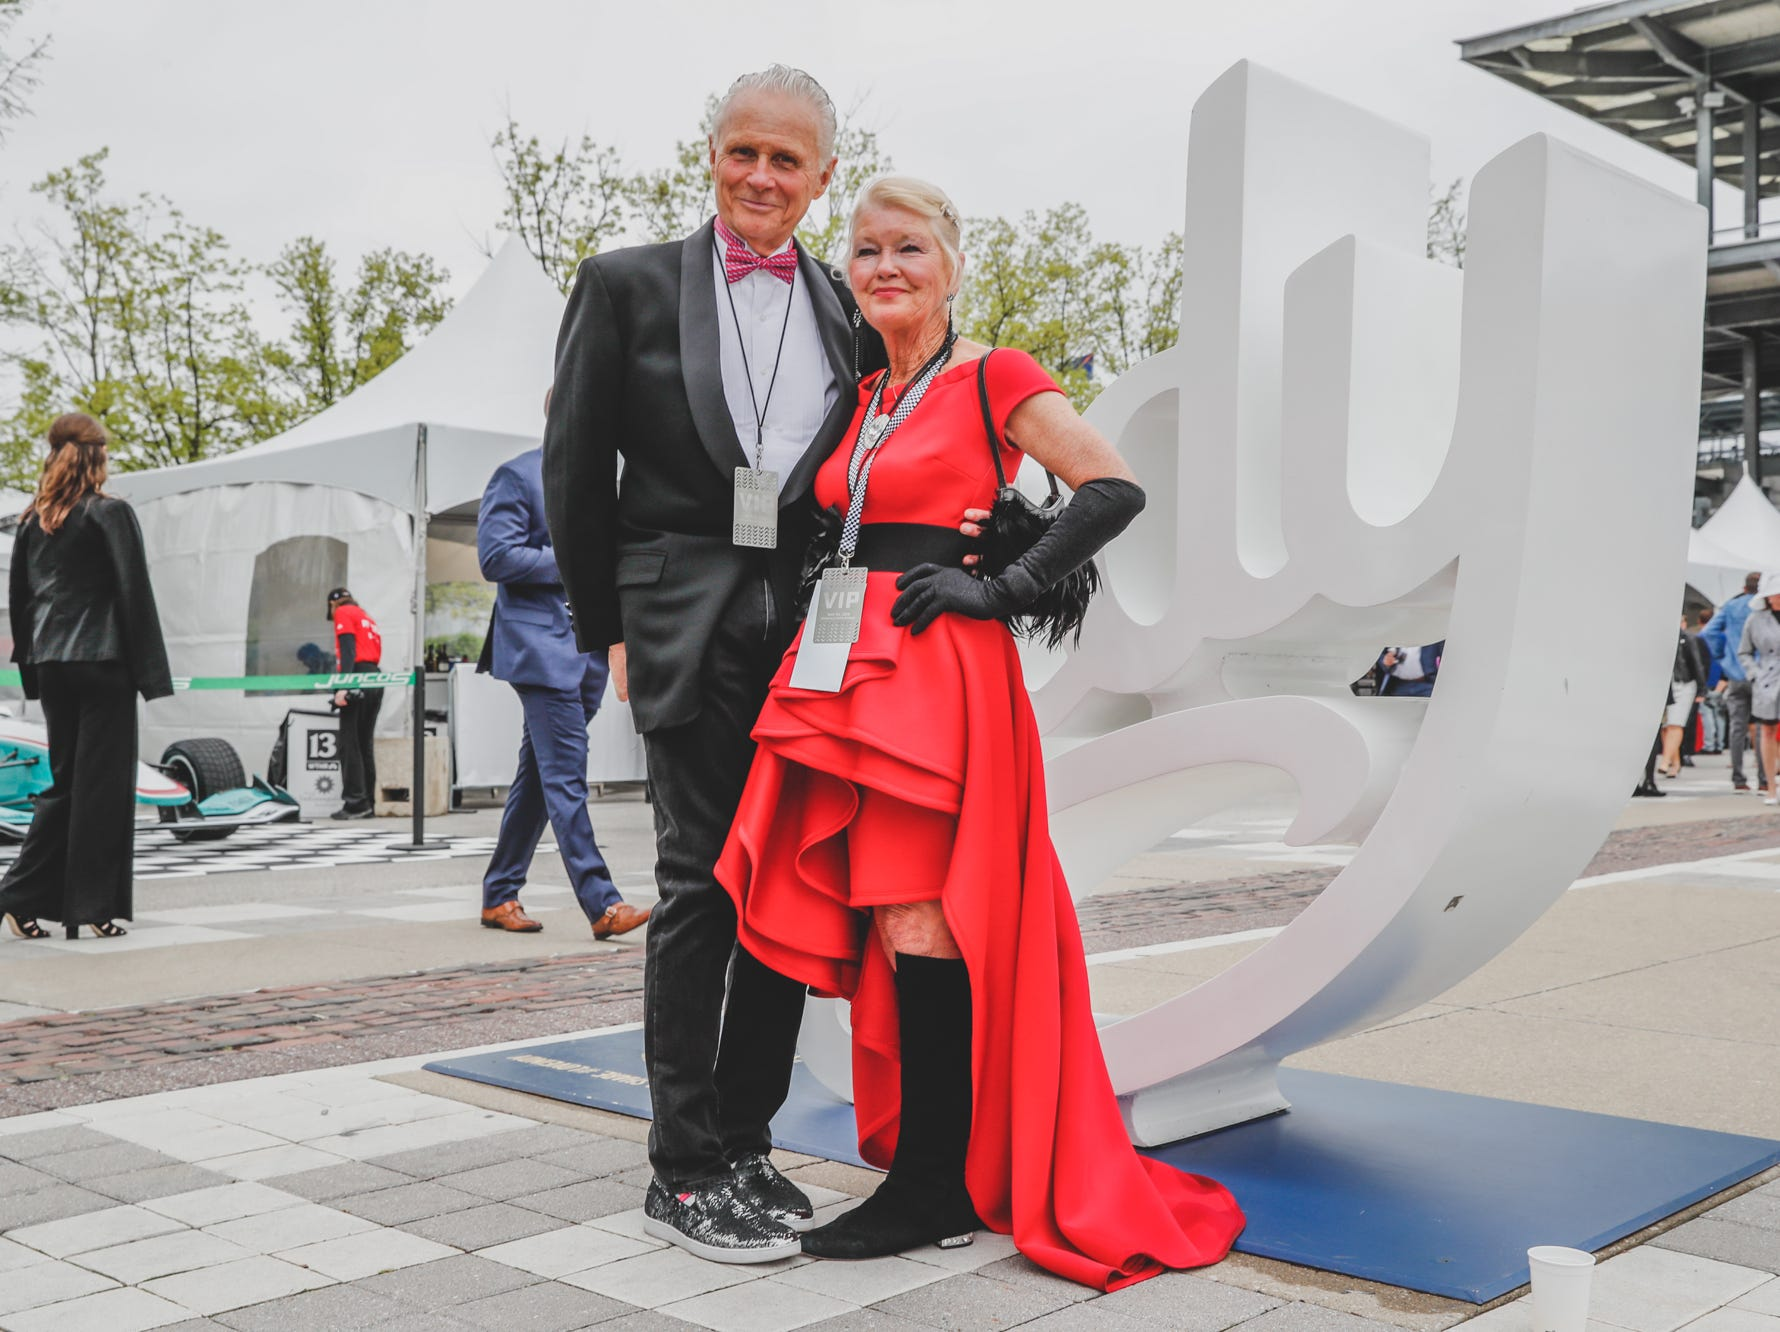 Rev Indy committee member, Teree Bosso and her husband Drew Bosso pose for photos at the Rev Indy fundraiser, held at the Indianapolis Motor Speedway on Saturday, May 4, 2019. Funds raised support the IU Health Foundation statewide and the IU Health Emergency Medical Center at IMS.